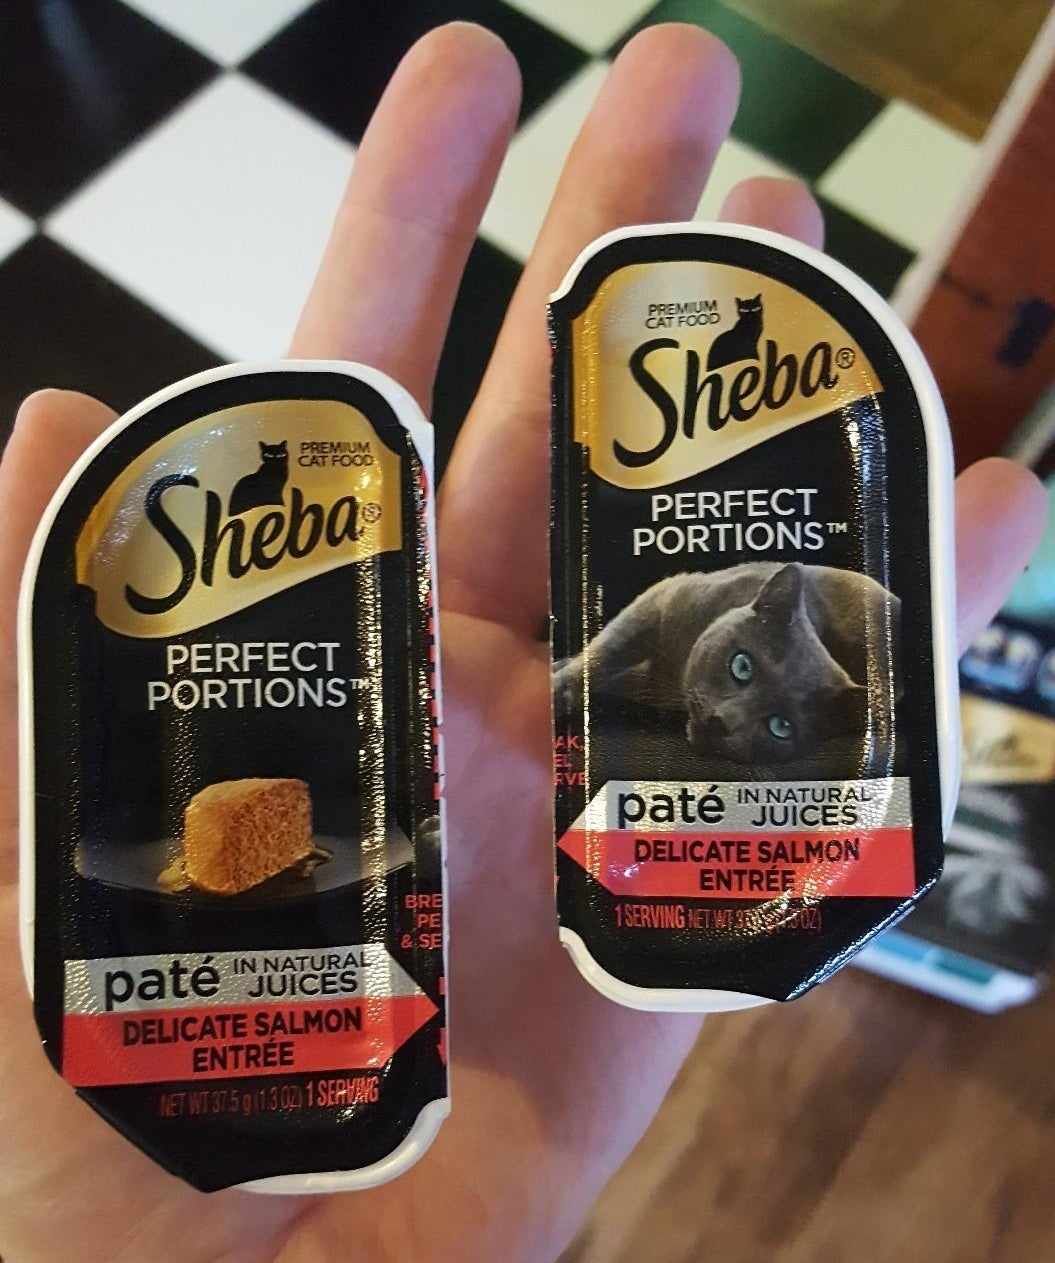 a hand holding the cat food